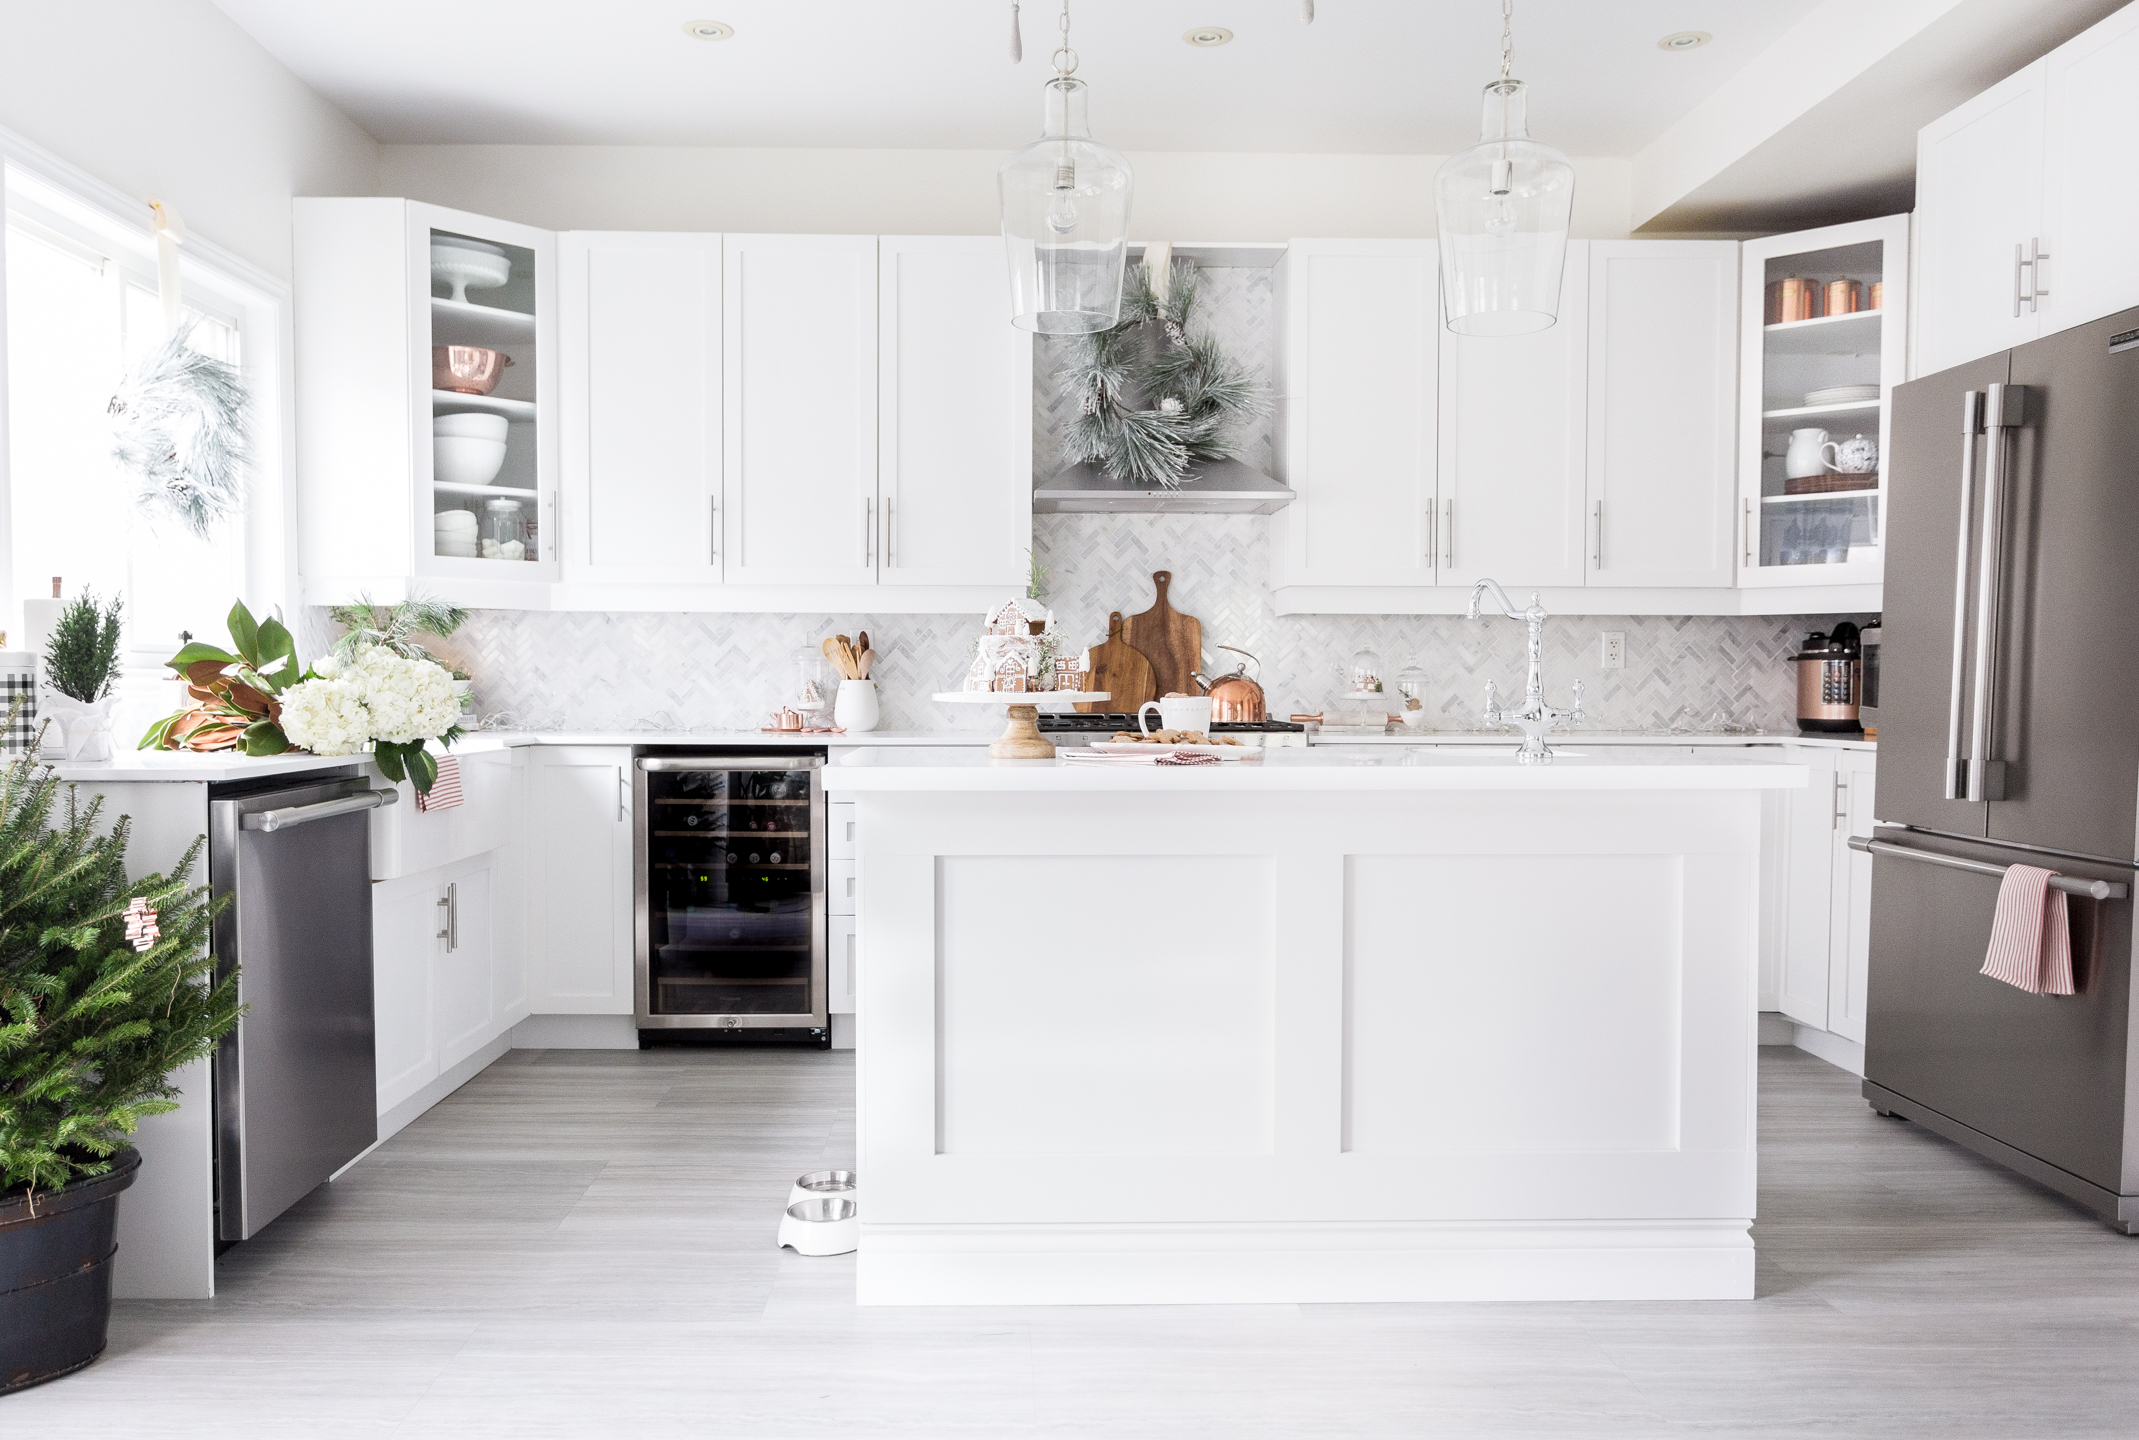 4. Paint cabinets - An easy solution for modernizing your kitchen on a budget is to paint those cabinets!White, black, or espresso colored cabinetry is currently on trend and can make your kitchen look brand new without the hassle and money of a complete renovation.